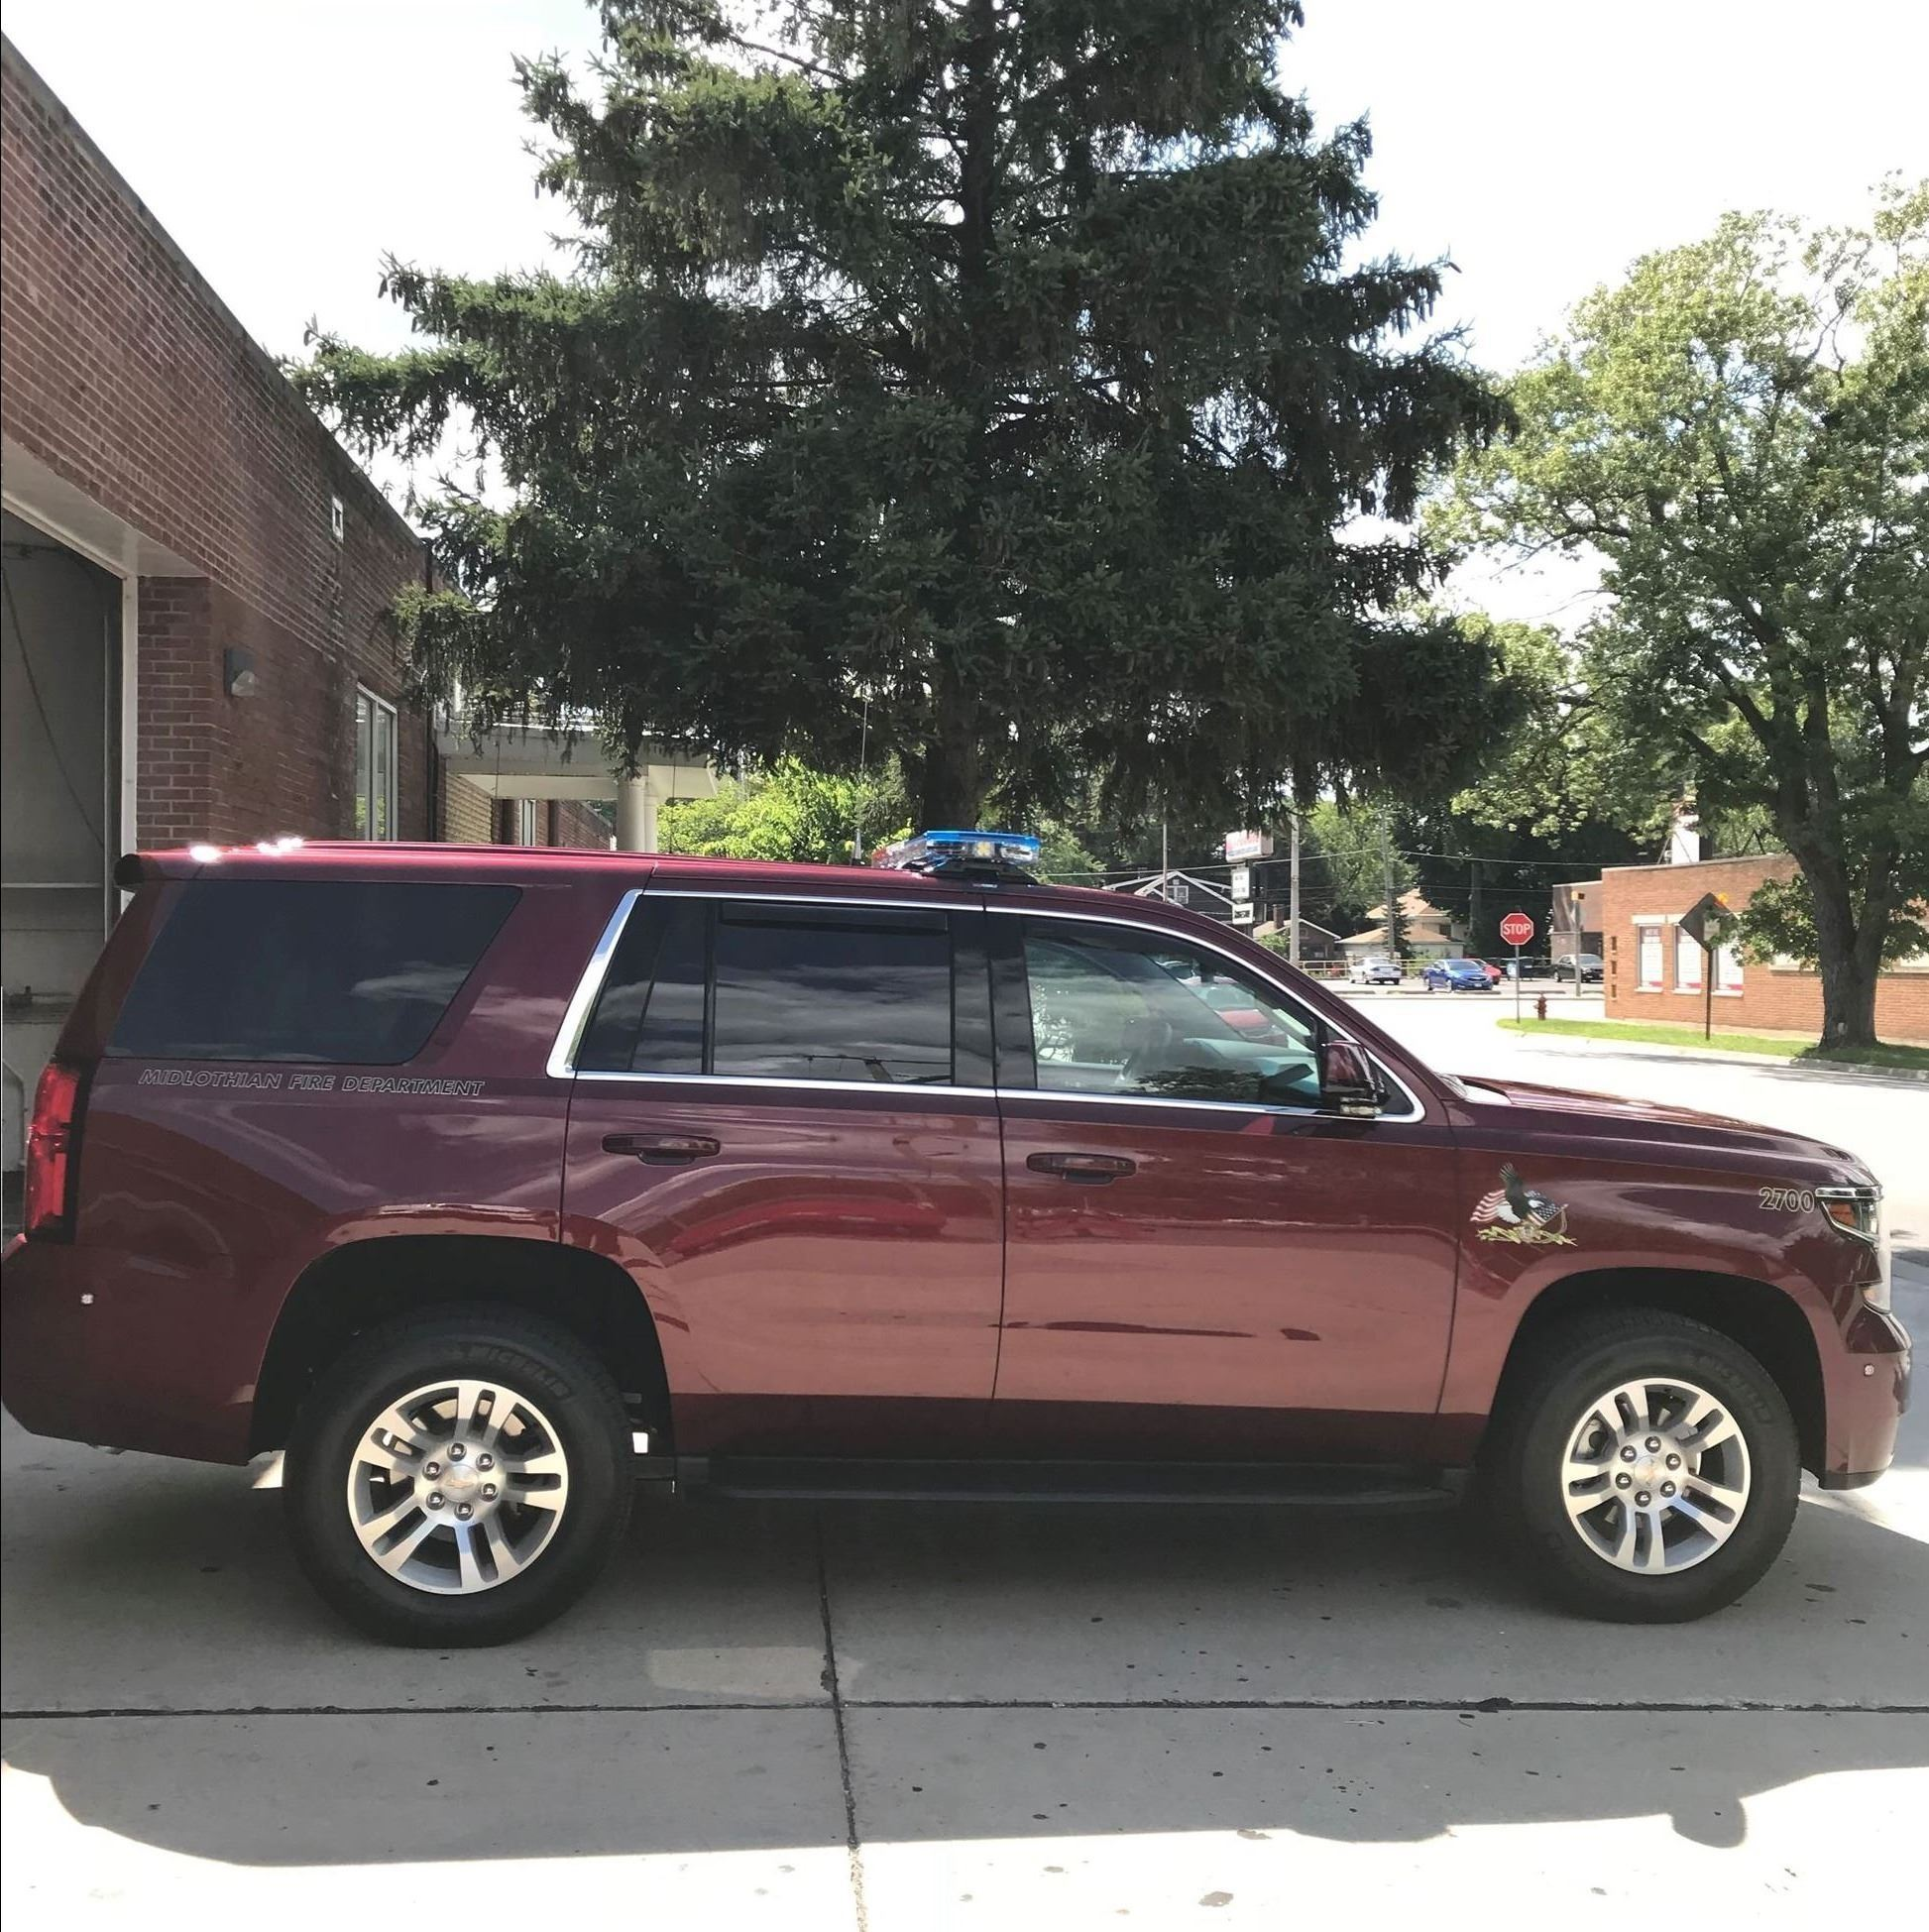 Fire Chief Vehicle 2700